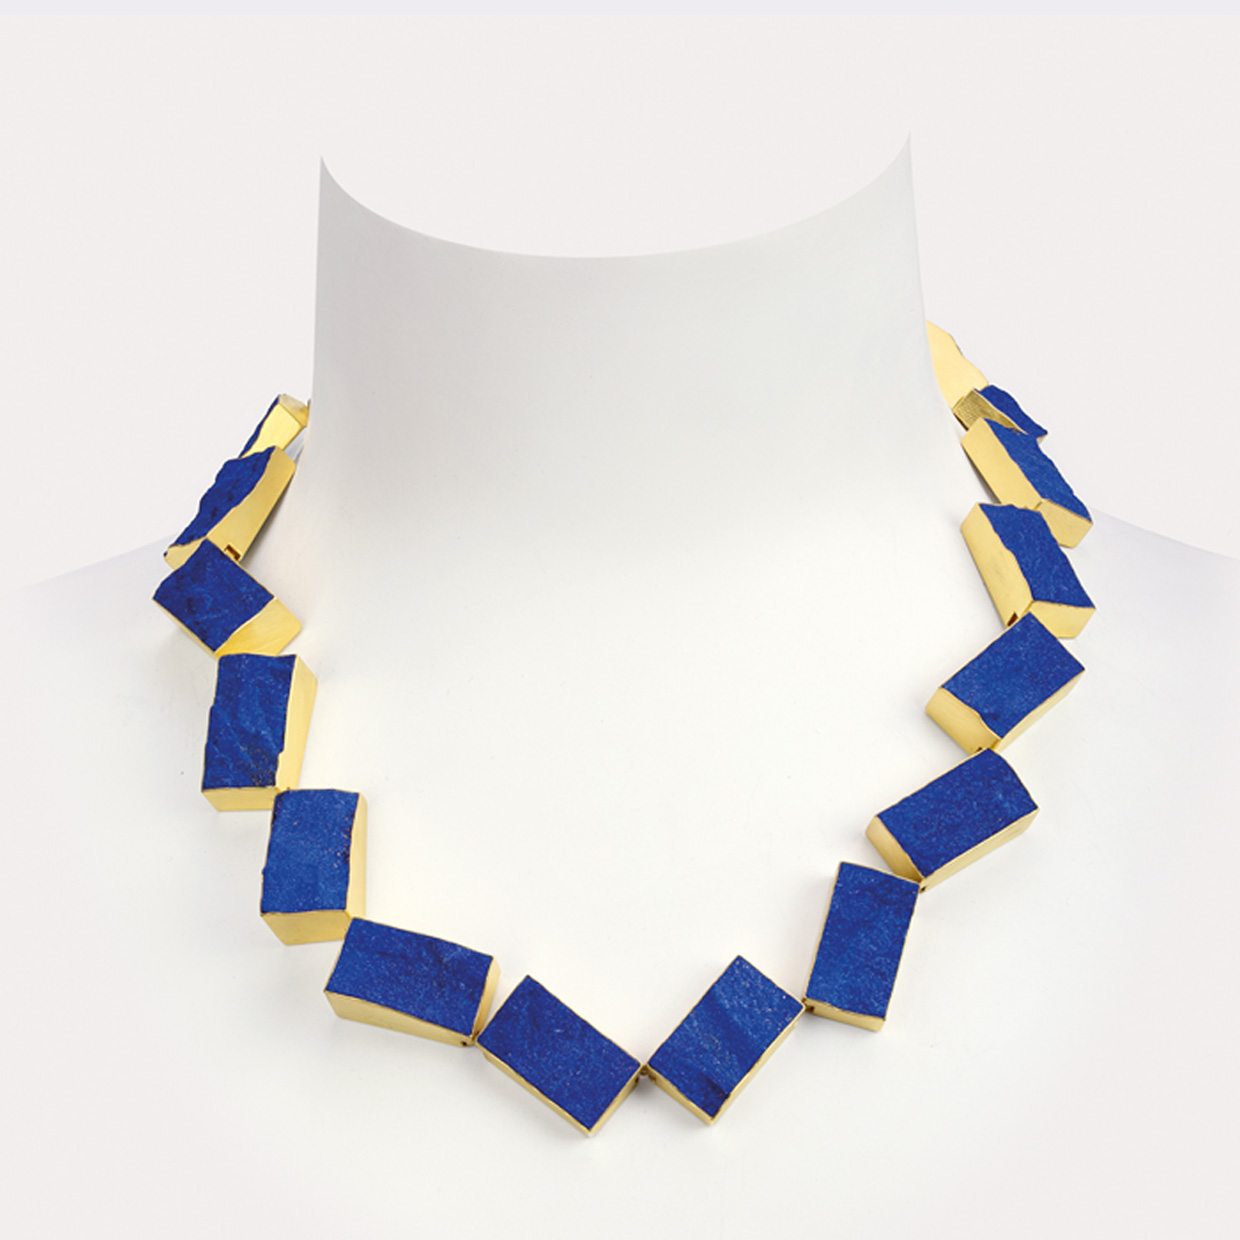 start  1  necklace  2016  gold  750  lapislazuli  540x25  mm  mobile